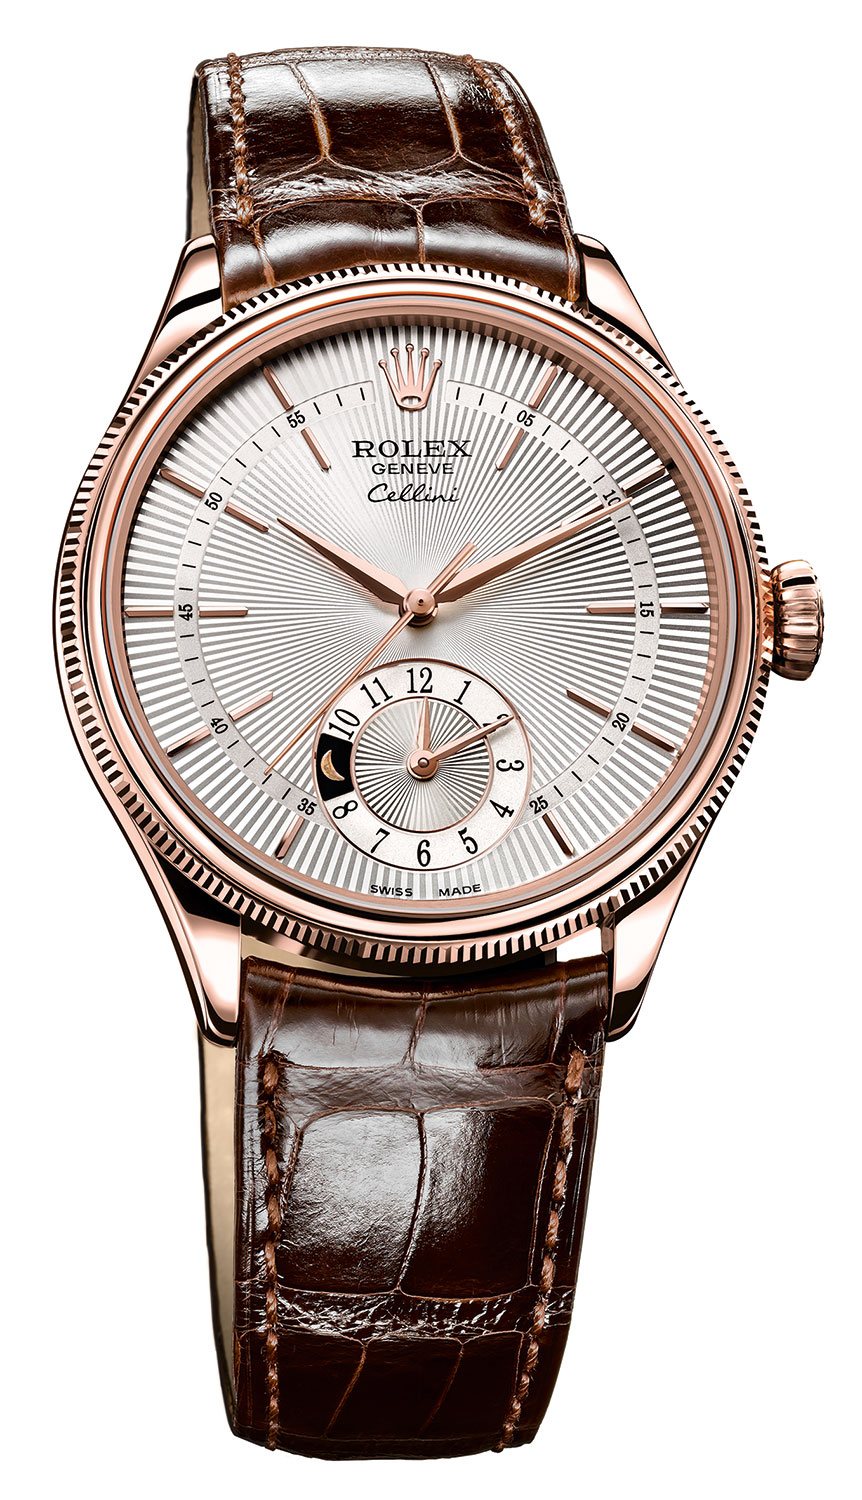 horlogerie-Dubail-rolex-cellini-champs-elysees-paris-luxe-paris